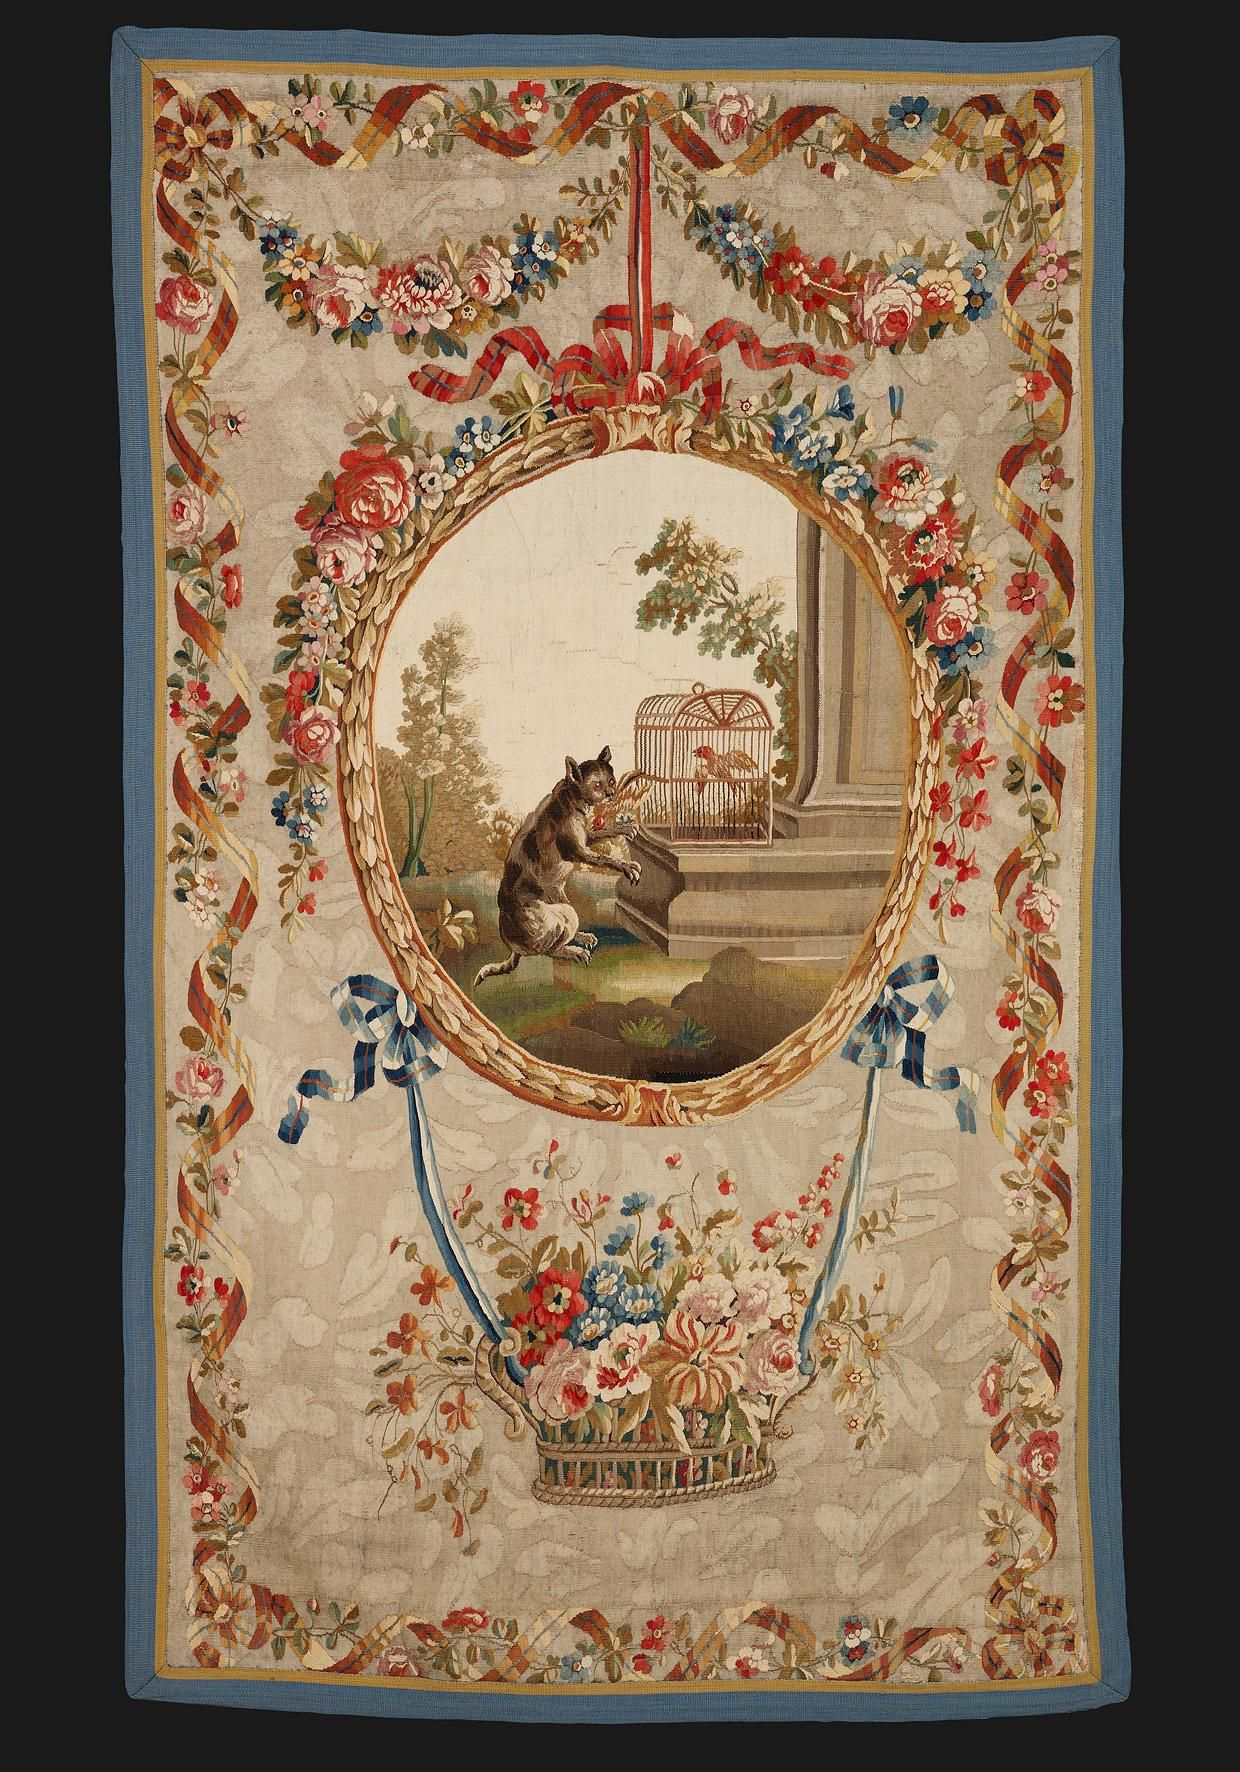 100+ Aubusson Ideas   Aubusson Rugs, Tapestry, Rugs On Carpet Within 2017 Blended Fabric Classic French Rococo Woven Tapestries (View 10 of 20)